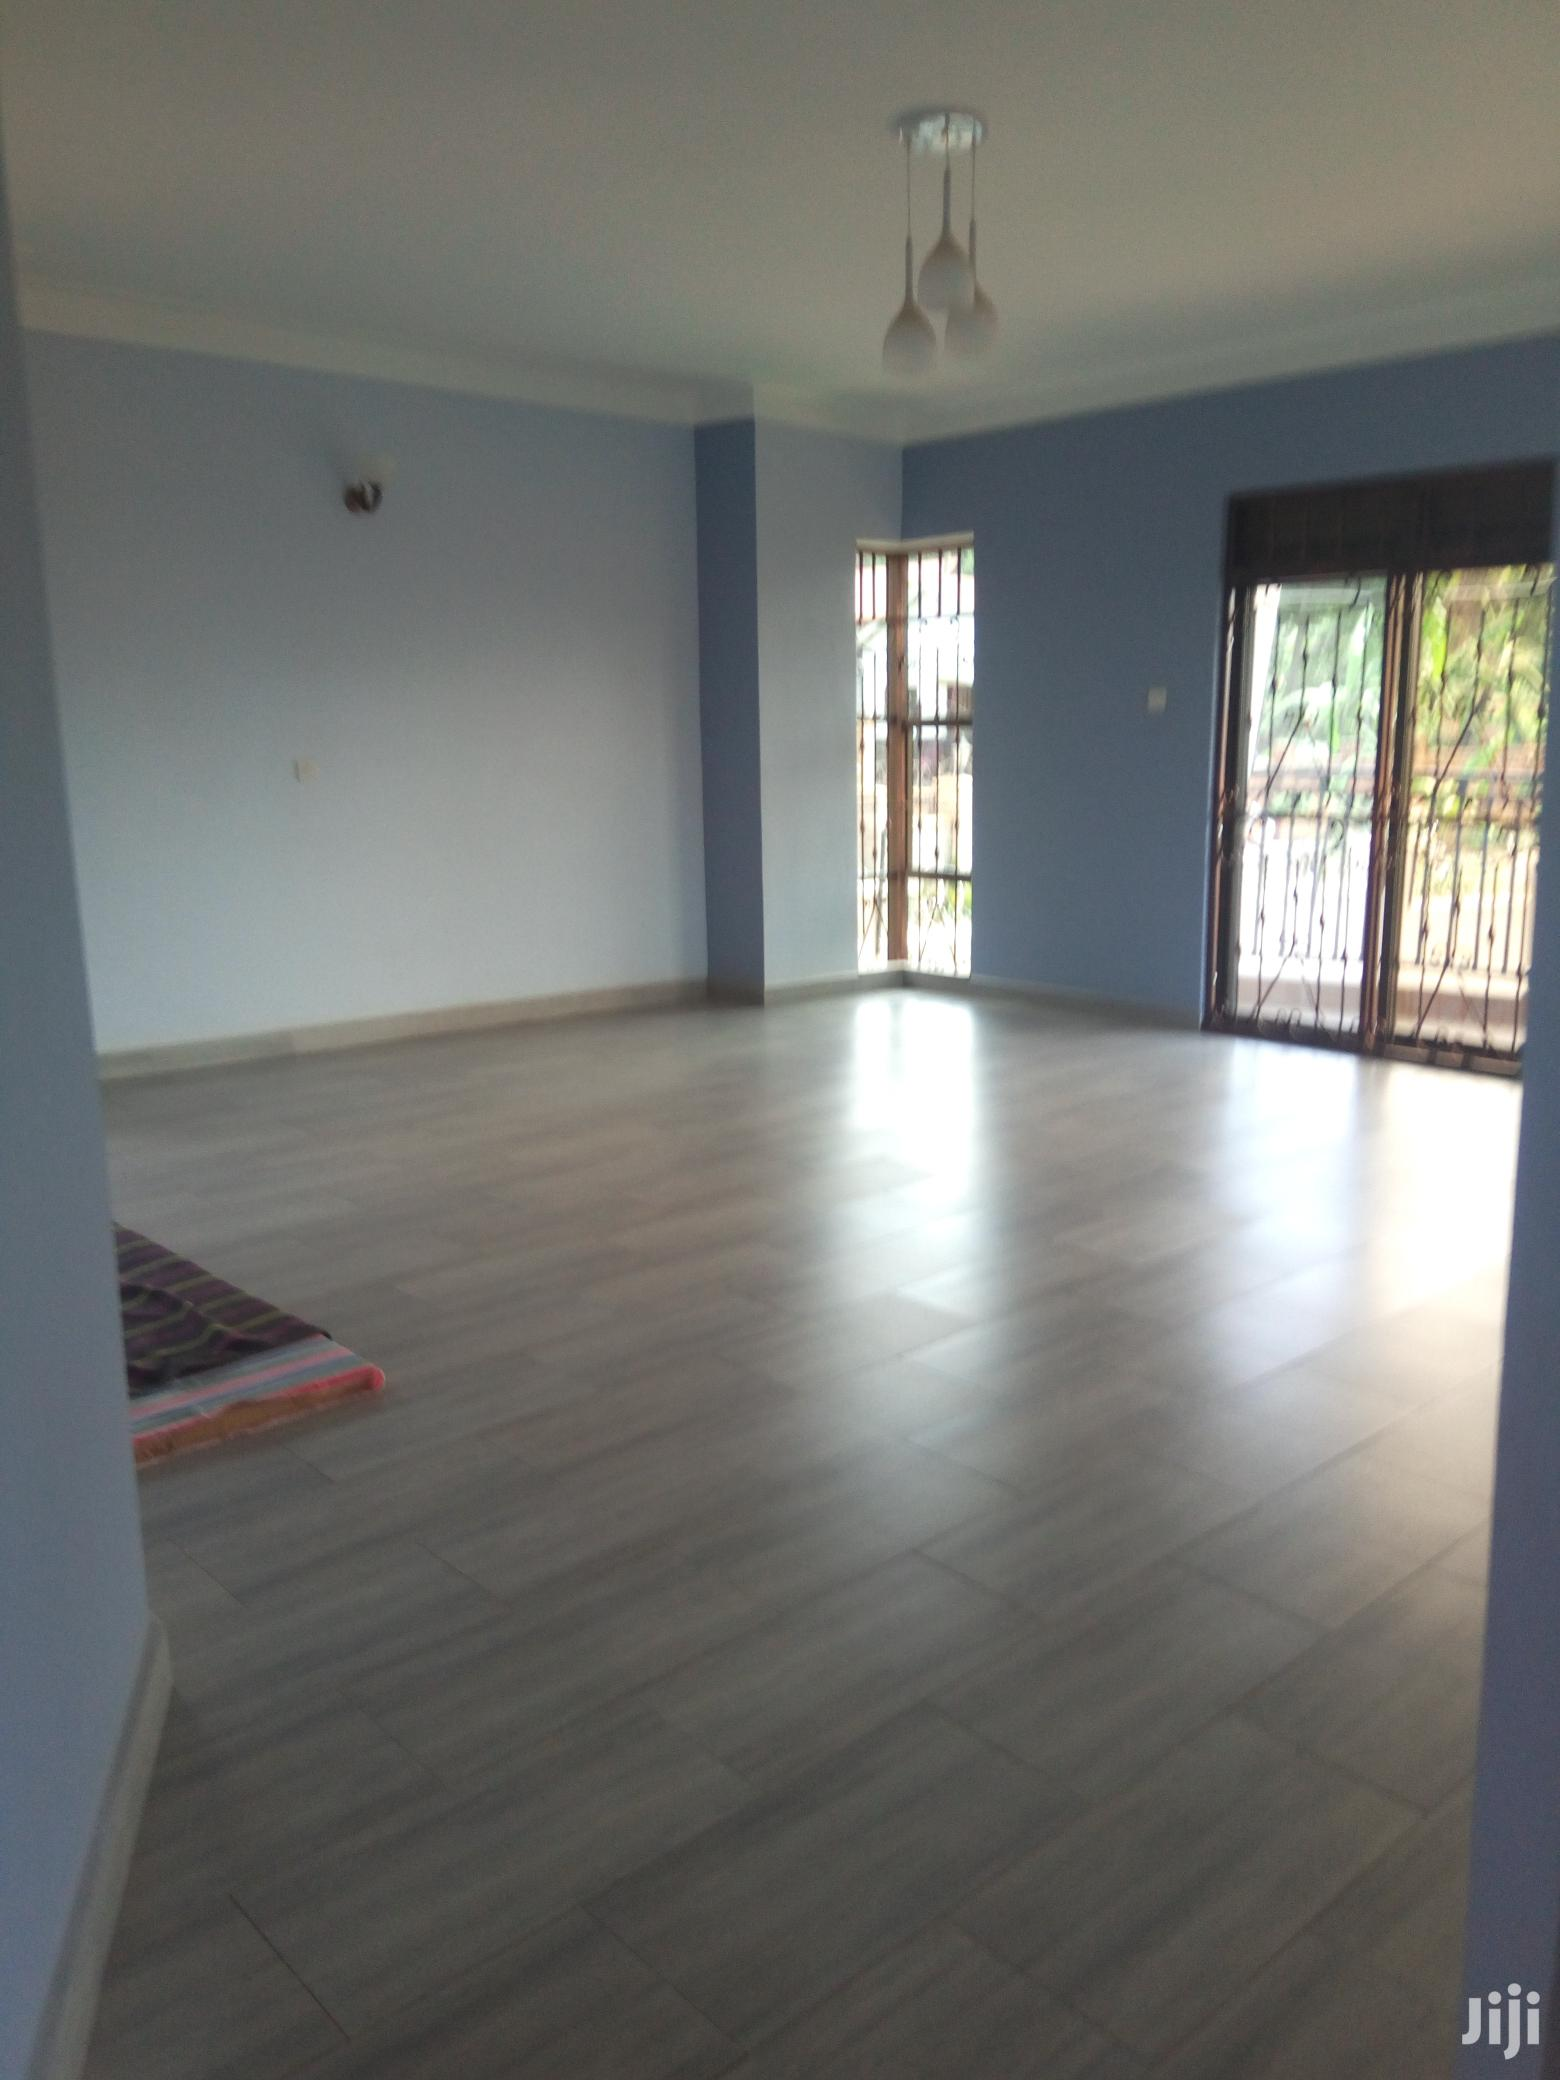 House at Kira on Sell | Houses & Apartments For Sale for sale in Kampala, Central Region, Uganda